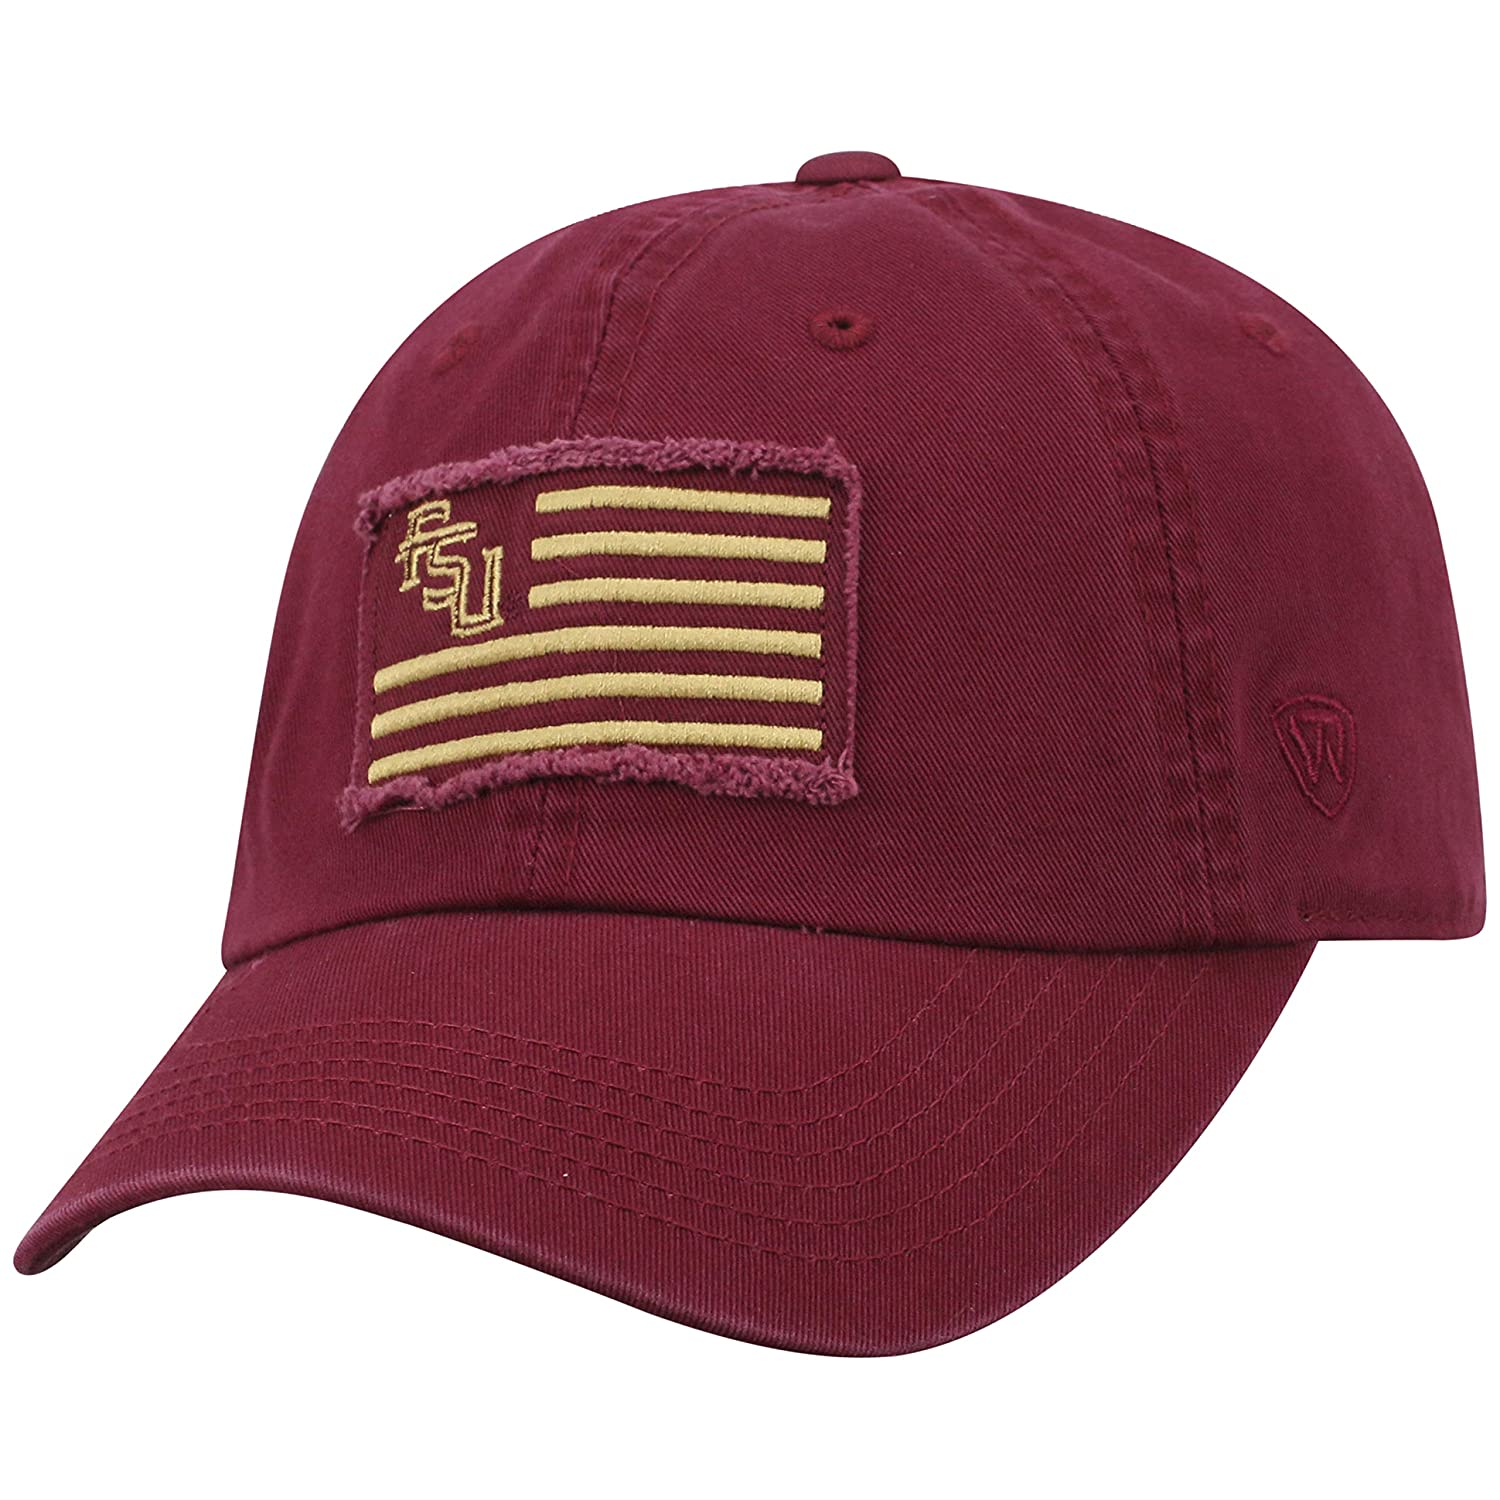 new concept b41e0 4c789 Amazon.com   Top of the World Florida State Seminoles Official NCAA  Adjustable Flag 4 Hat Cap Curved Bill 419183   Sports   Outdoors